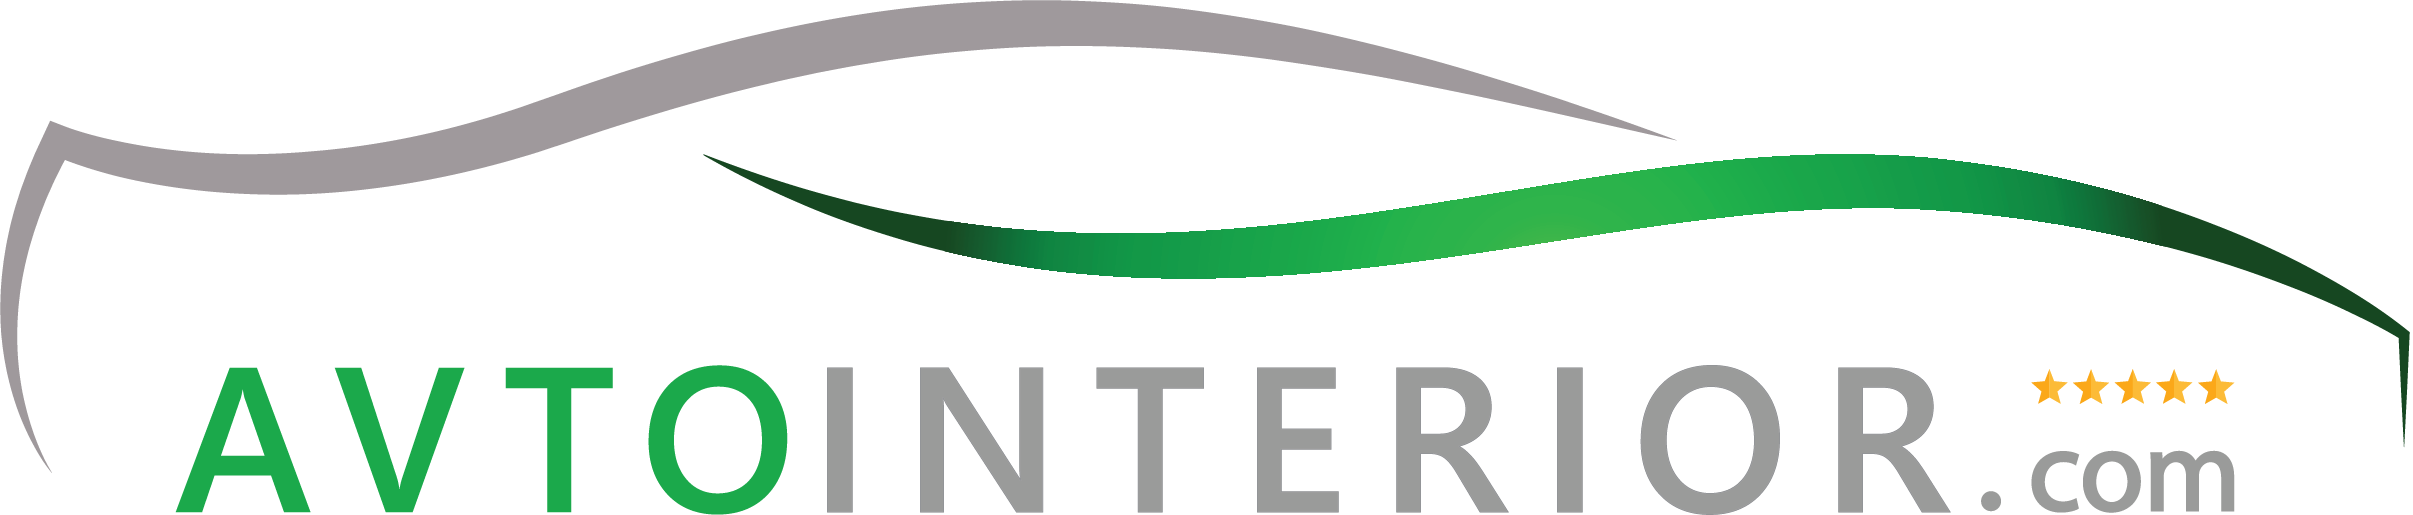 avtointerior logo for desktop